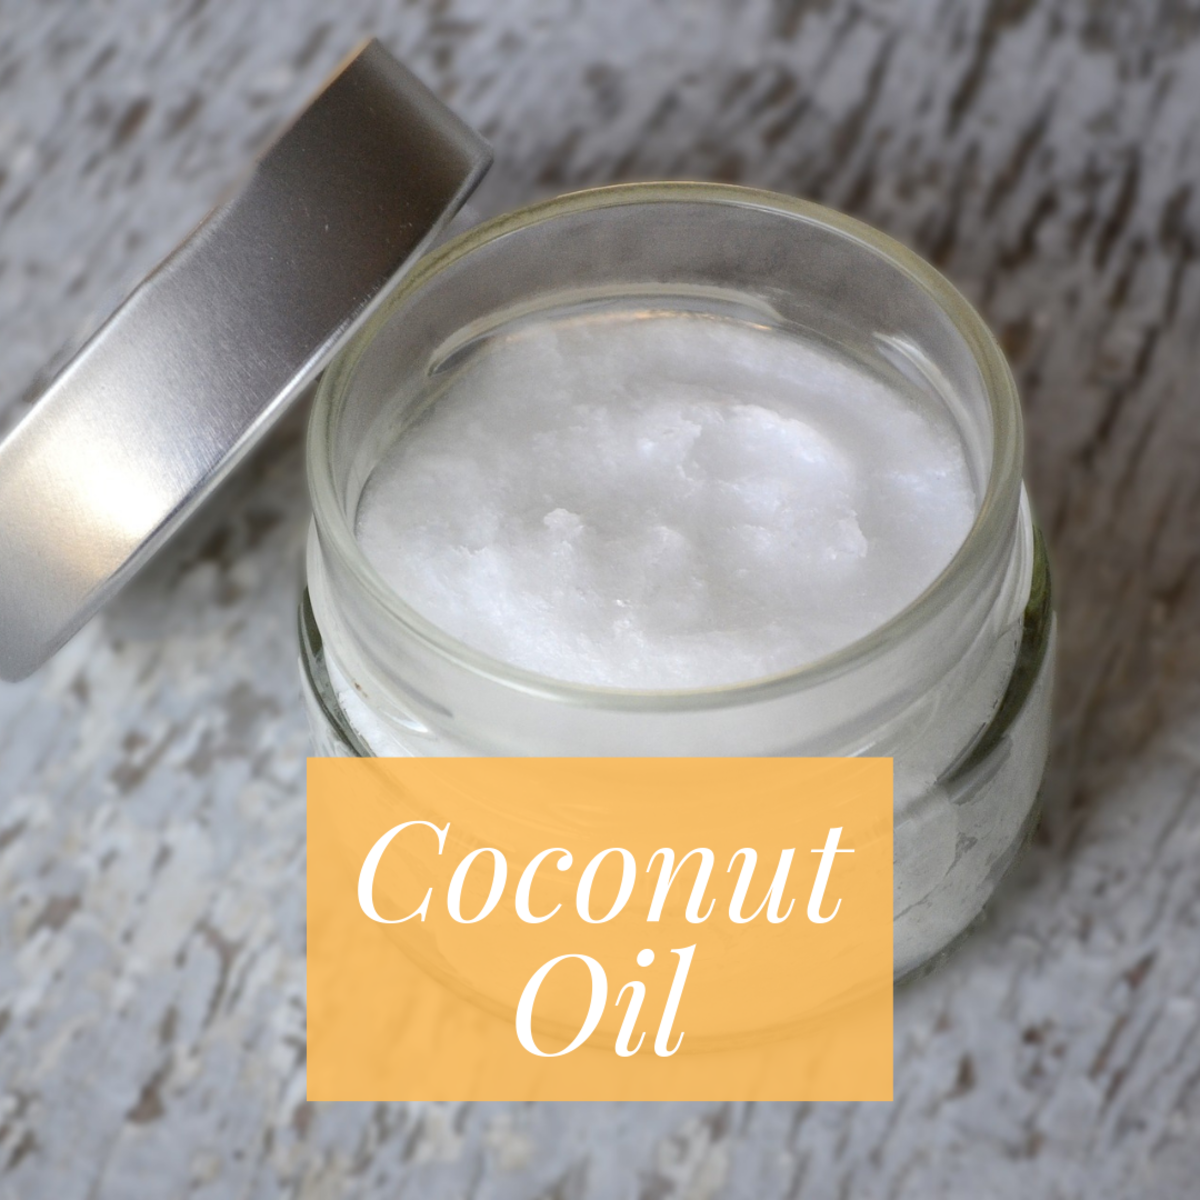 Pure coconut oil has incredible health and beauty benefits.